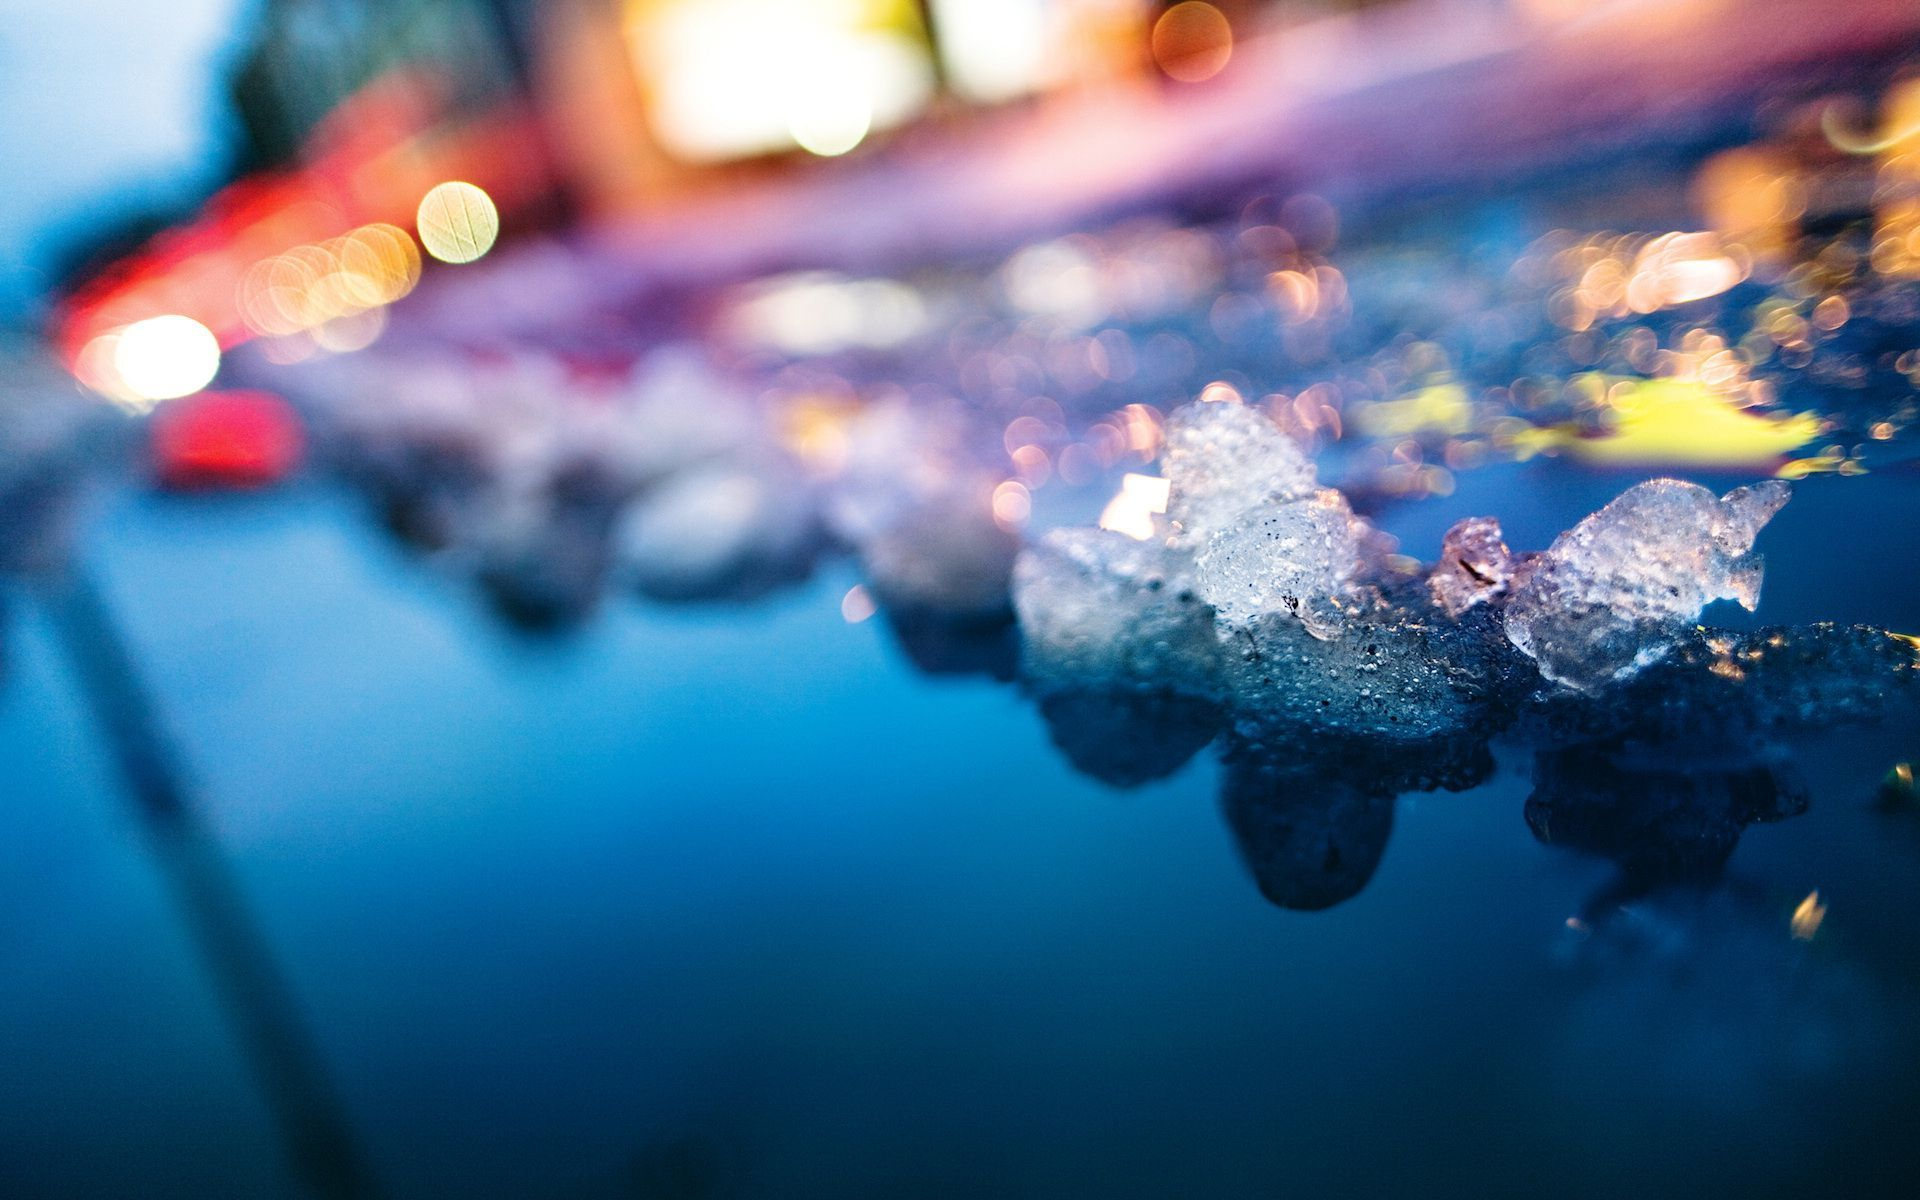 Melting Snow Wallpapers - Top Free